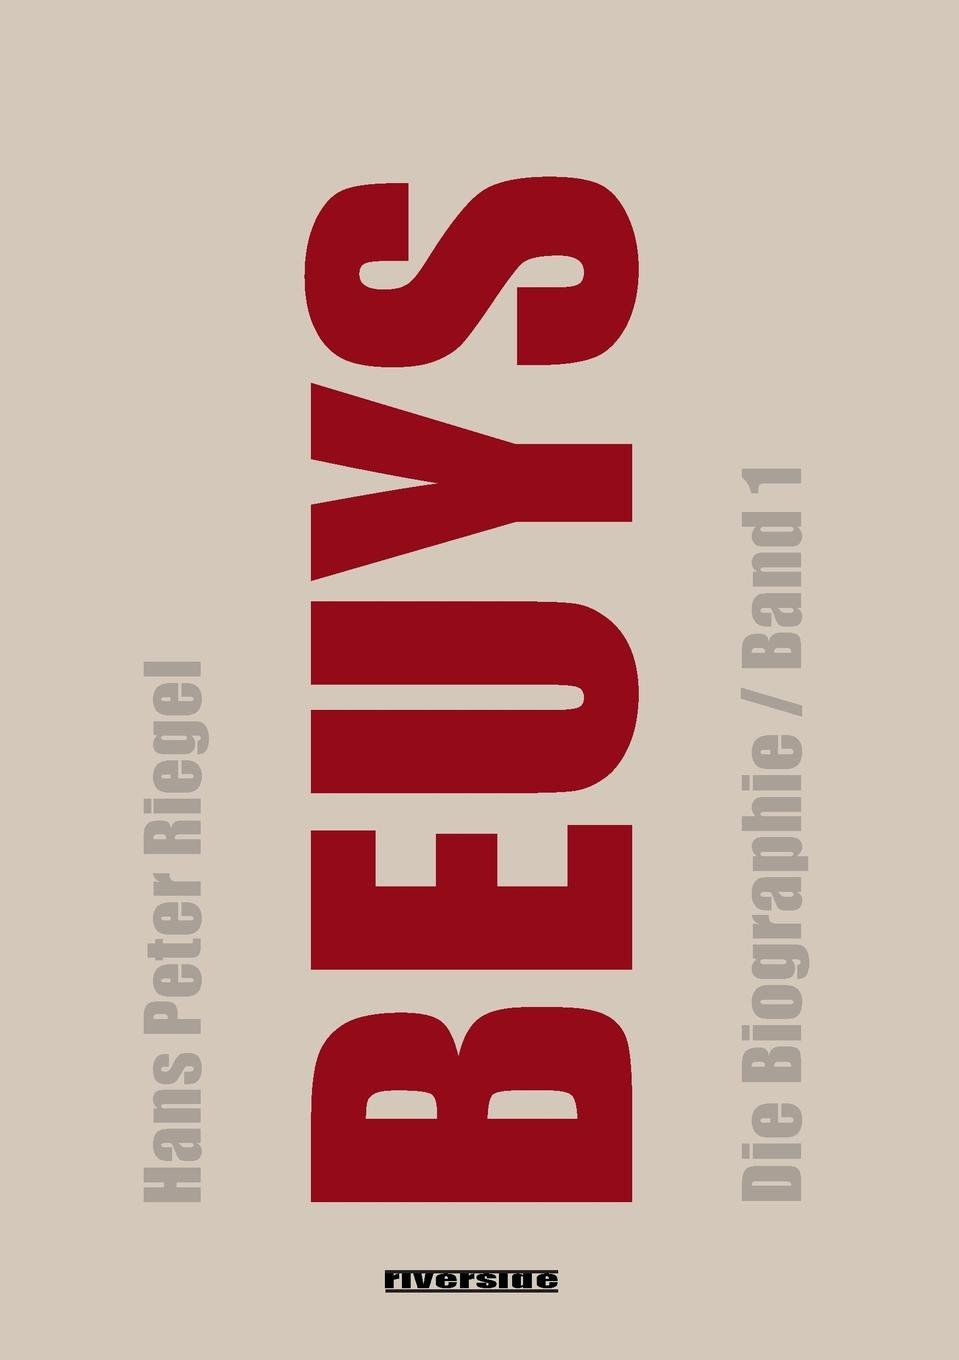 BEUYS: Die Biographie (Band 1)